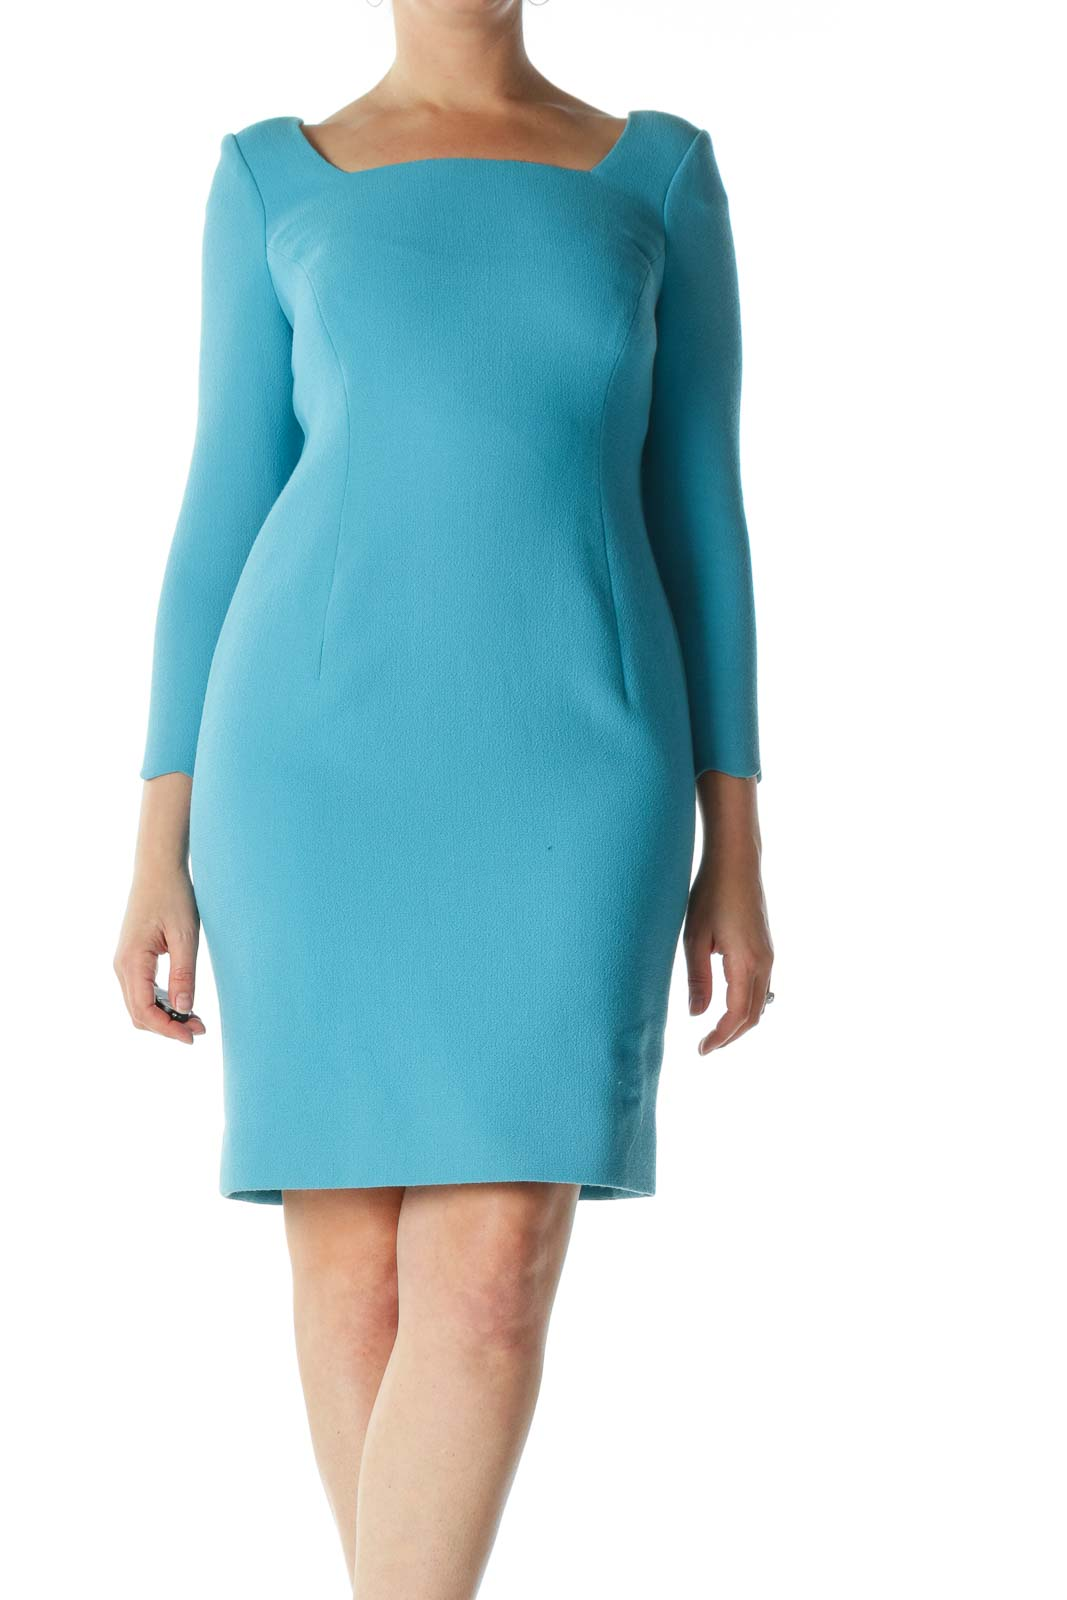 Blue Square-Neck Long-Sleeve Sleeve-Shapes Dress Front